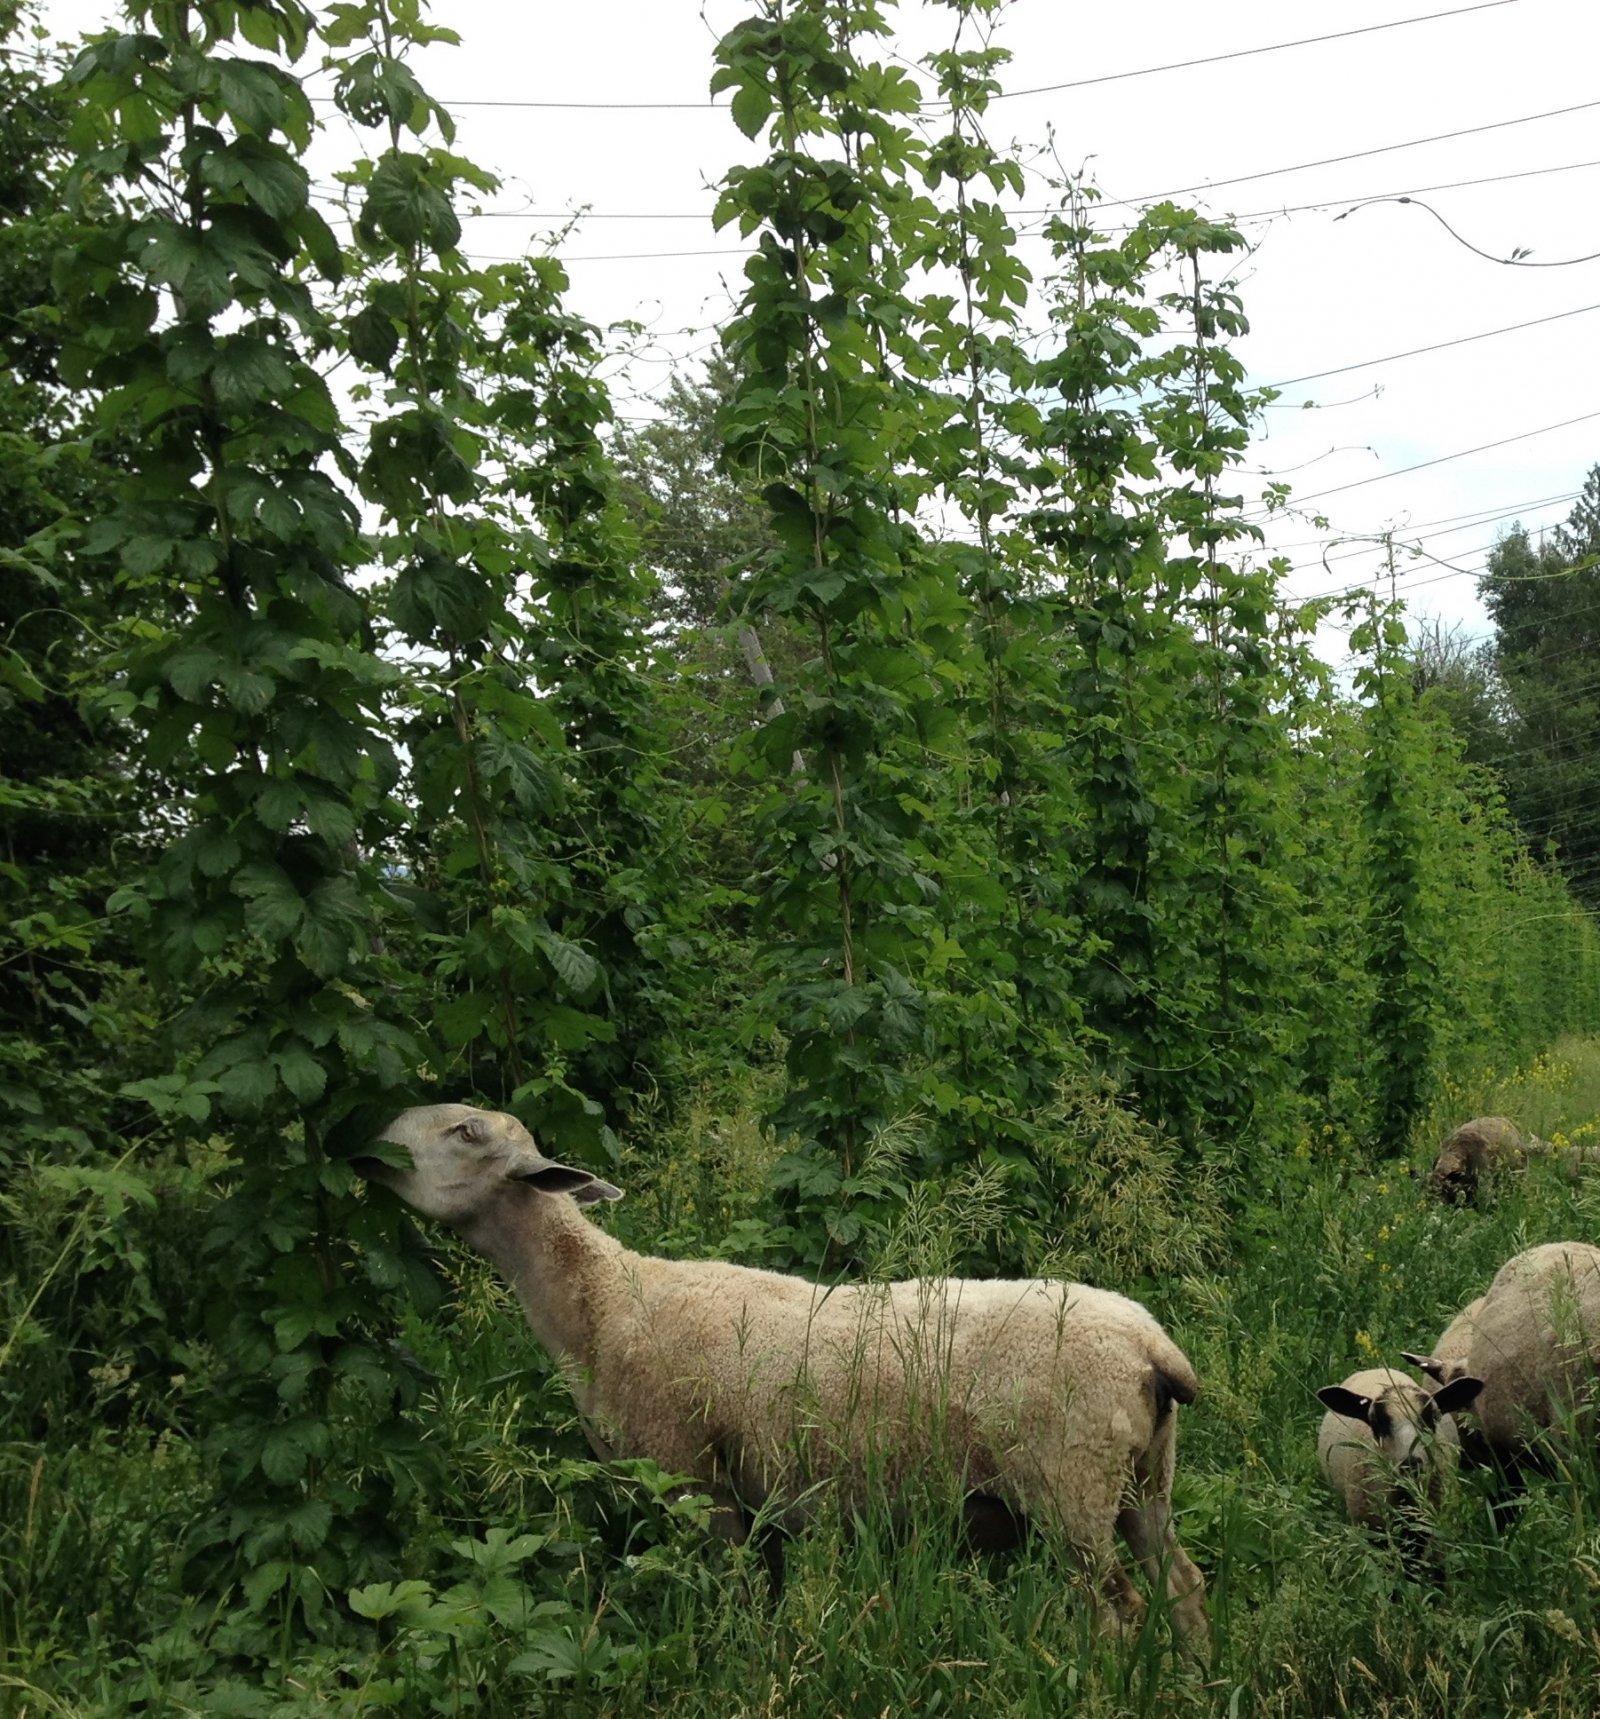 cranogg ales, beer, sheep, hops